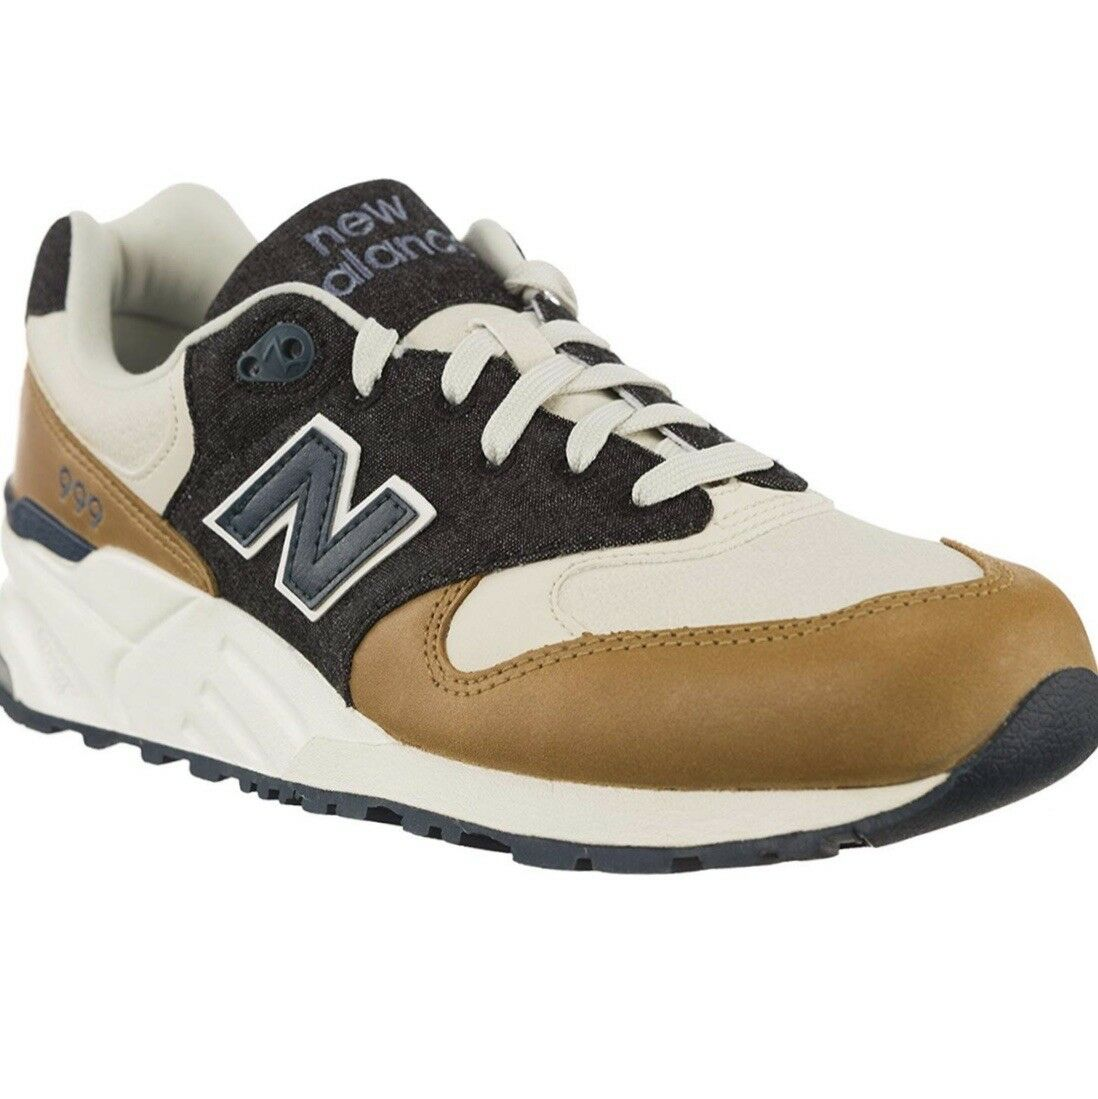 NEW New Balance RARE 999 Elite Edition, Powder Suede Leather - Size 10 (ML999NB)